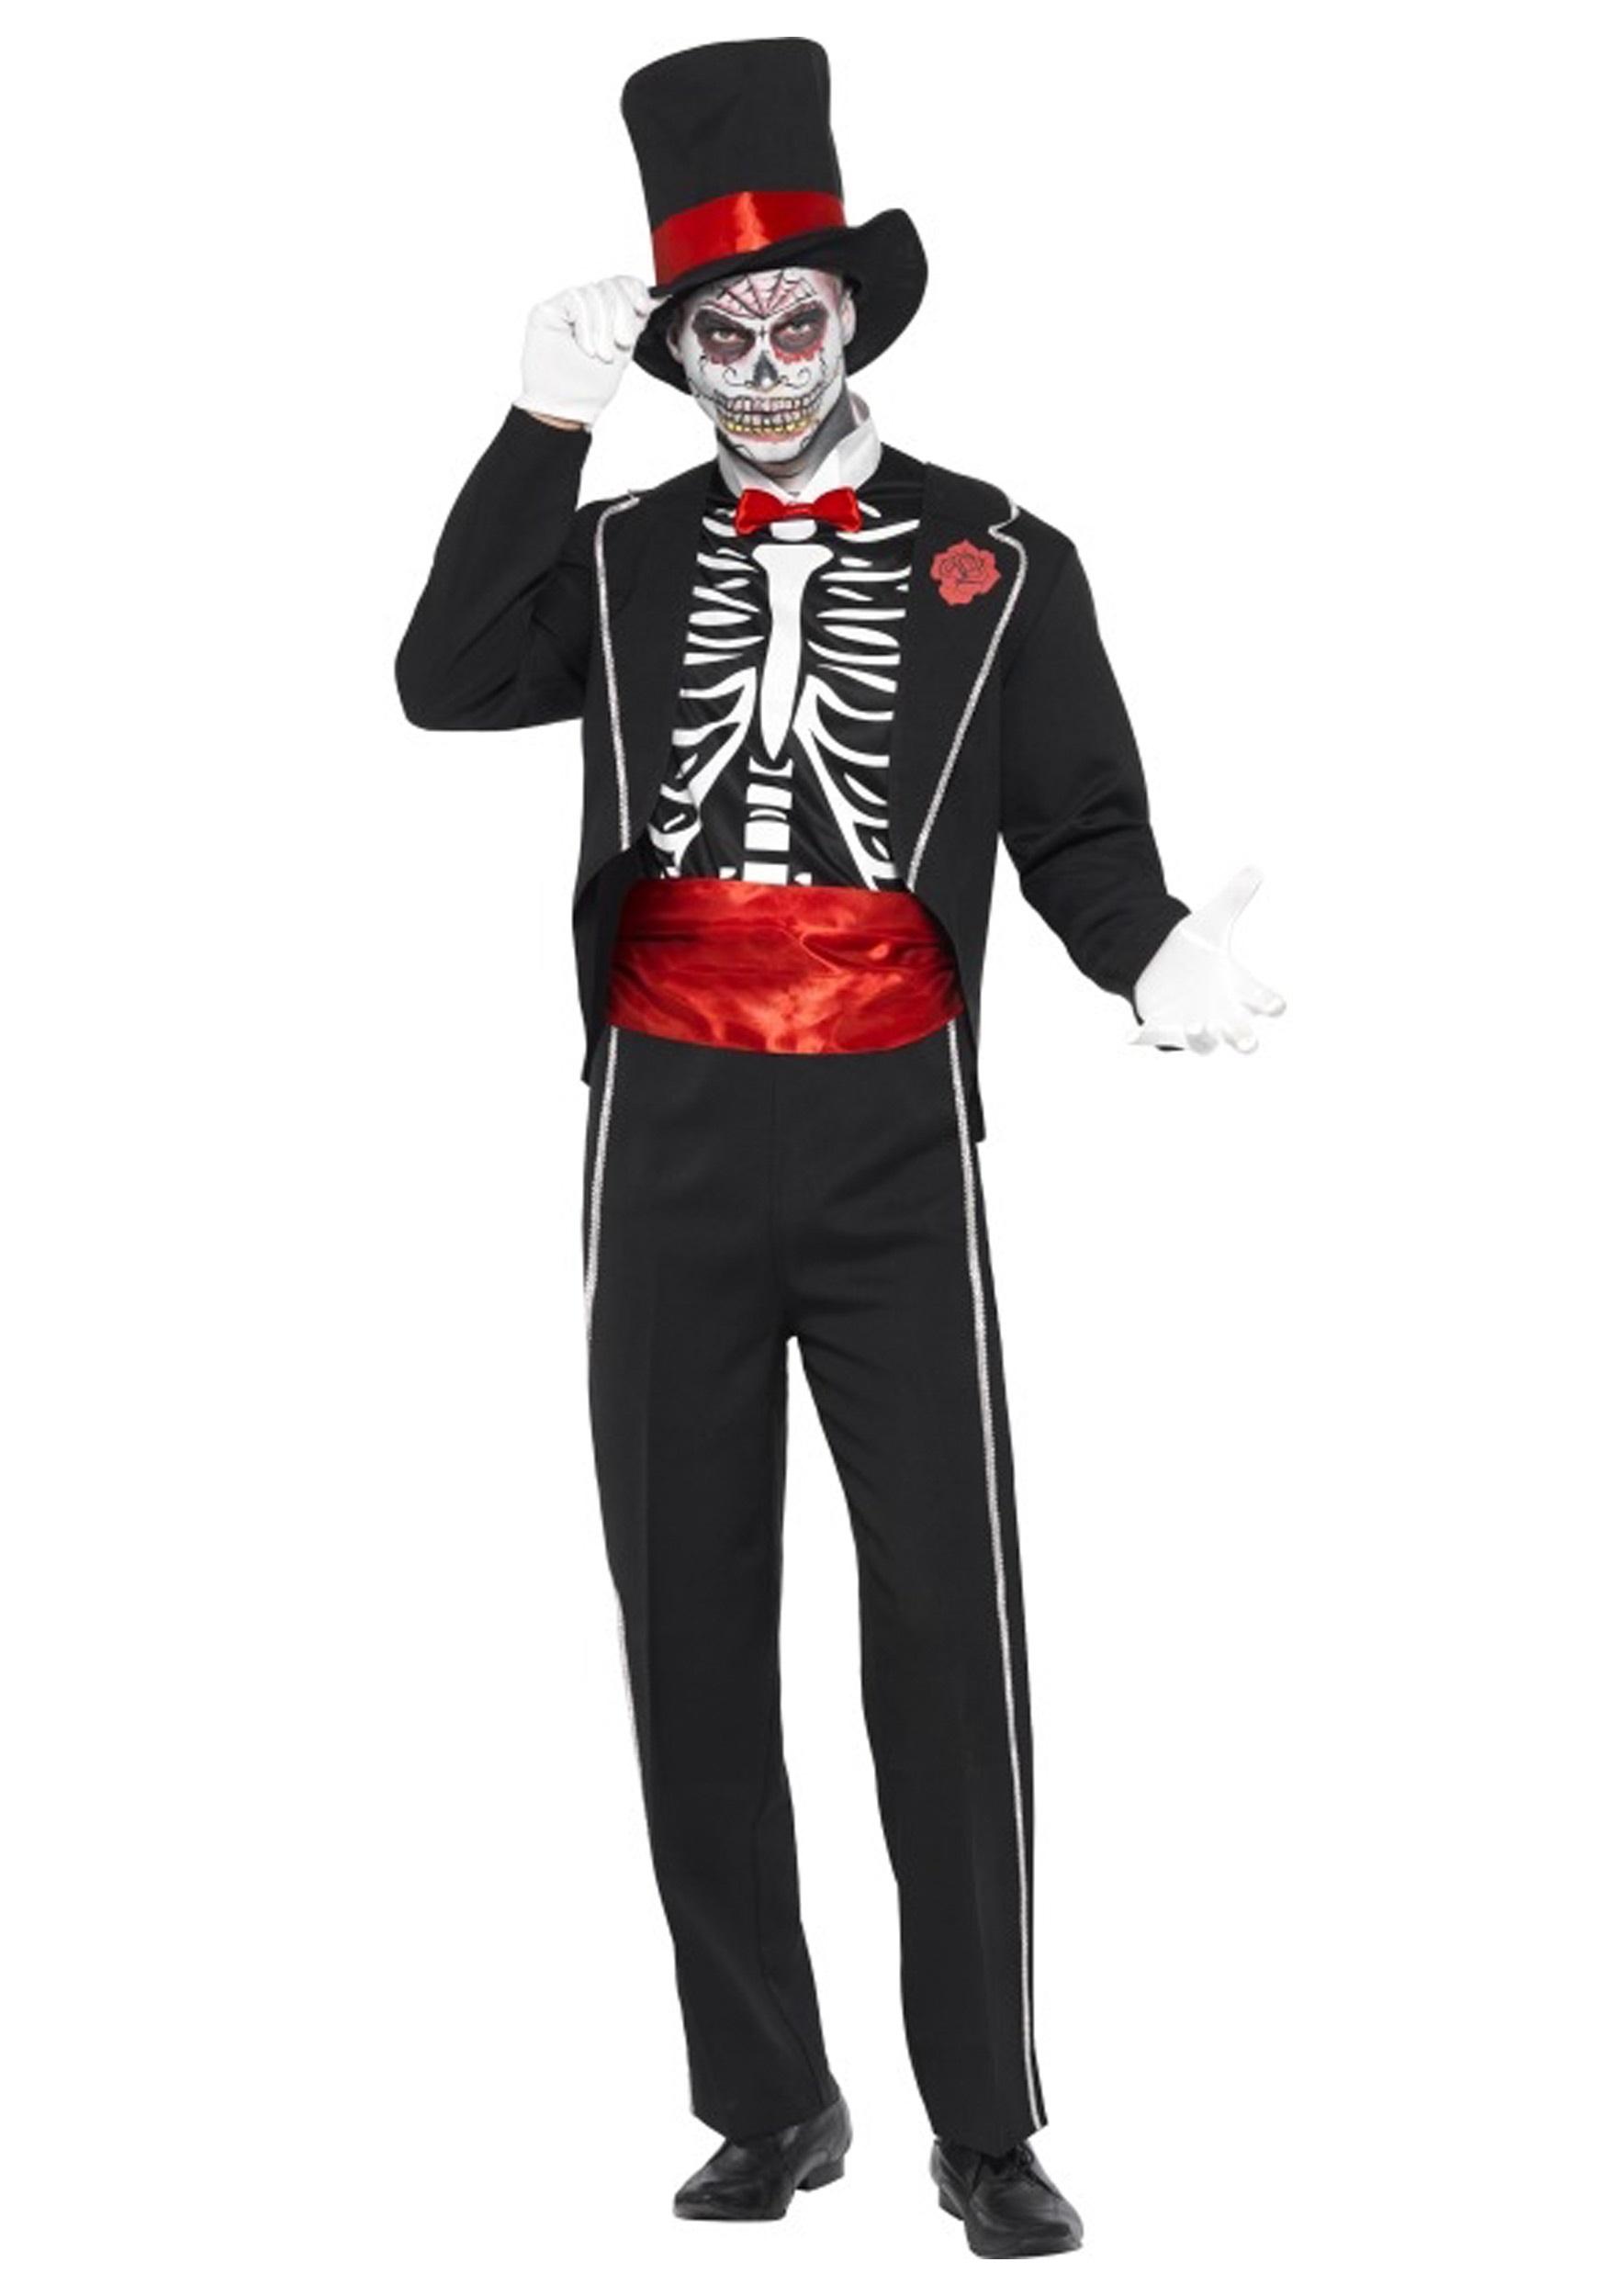 adult men's day of the dead costume